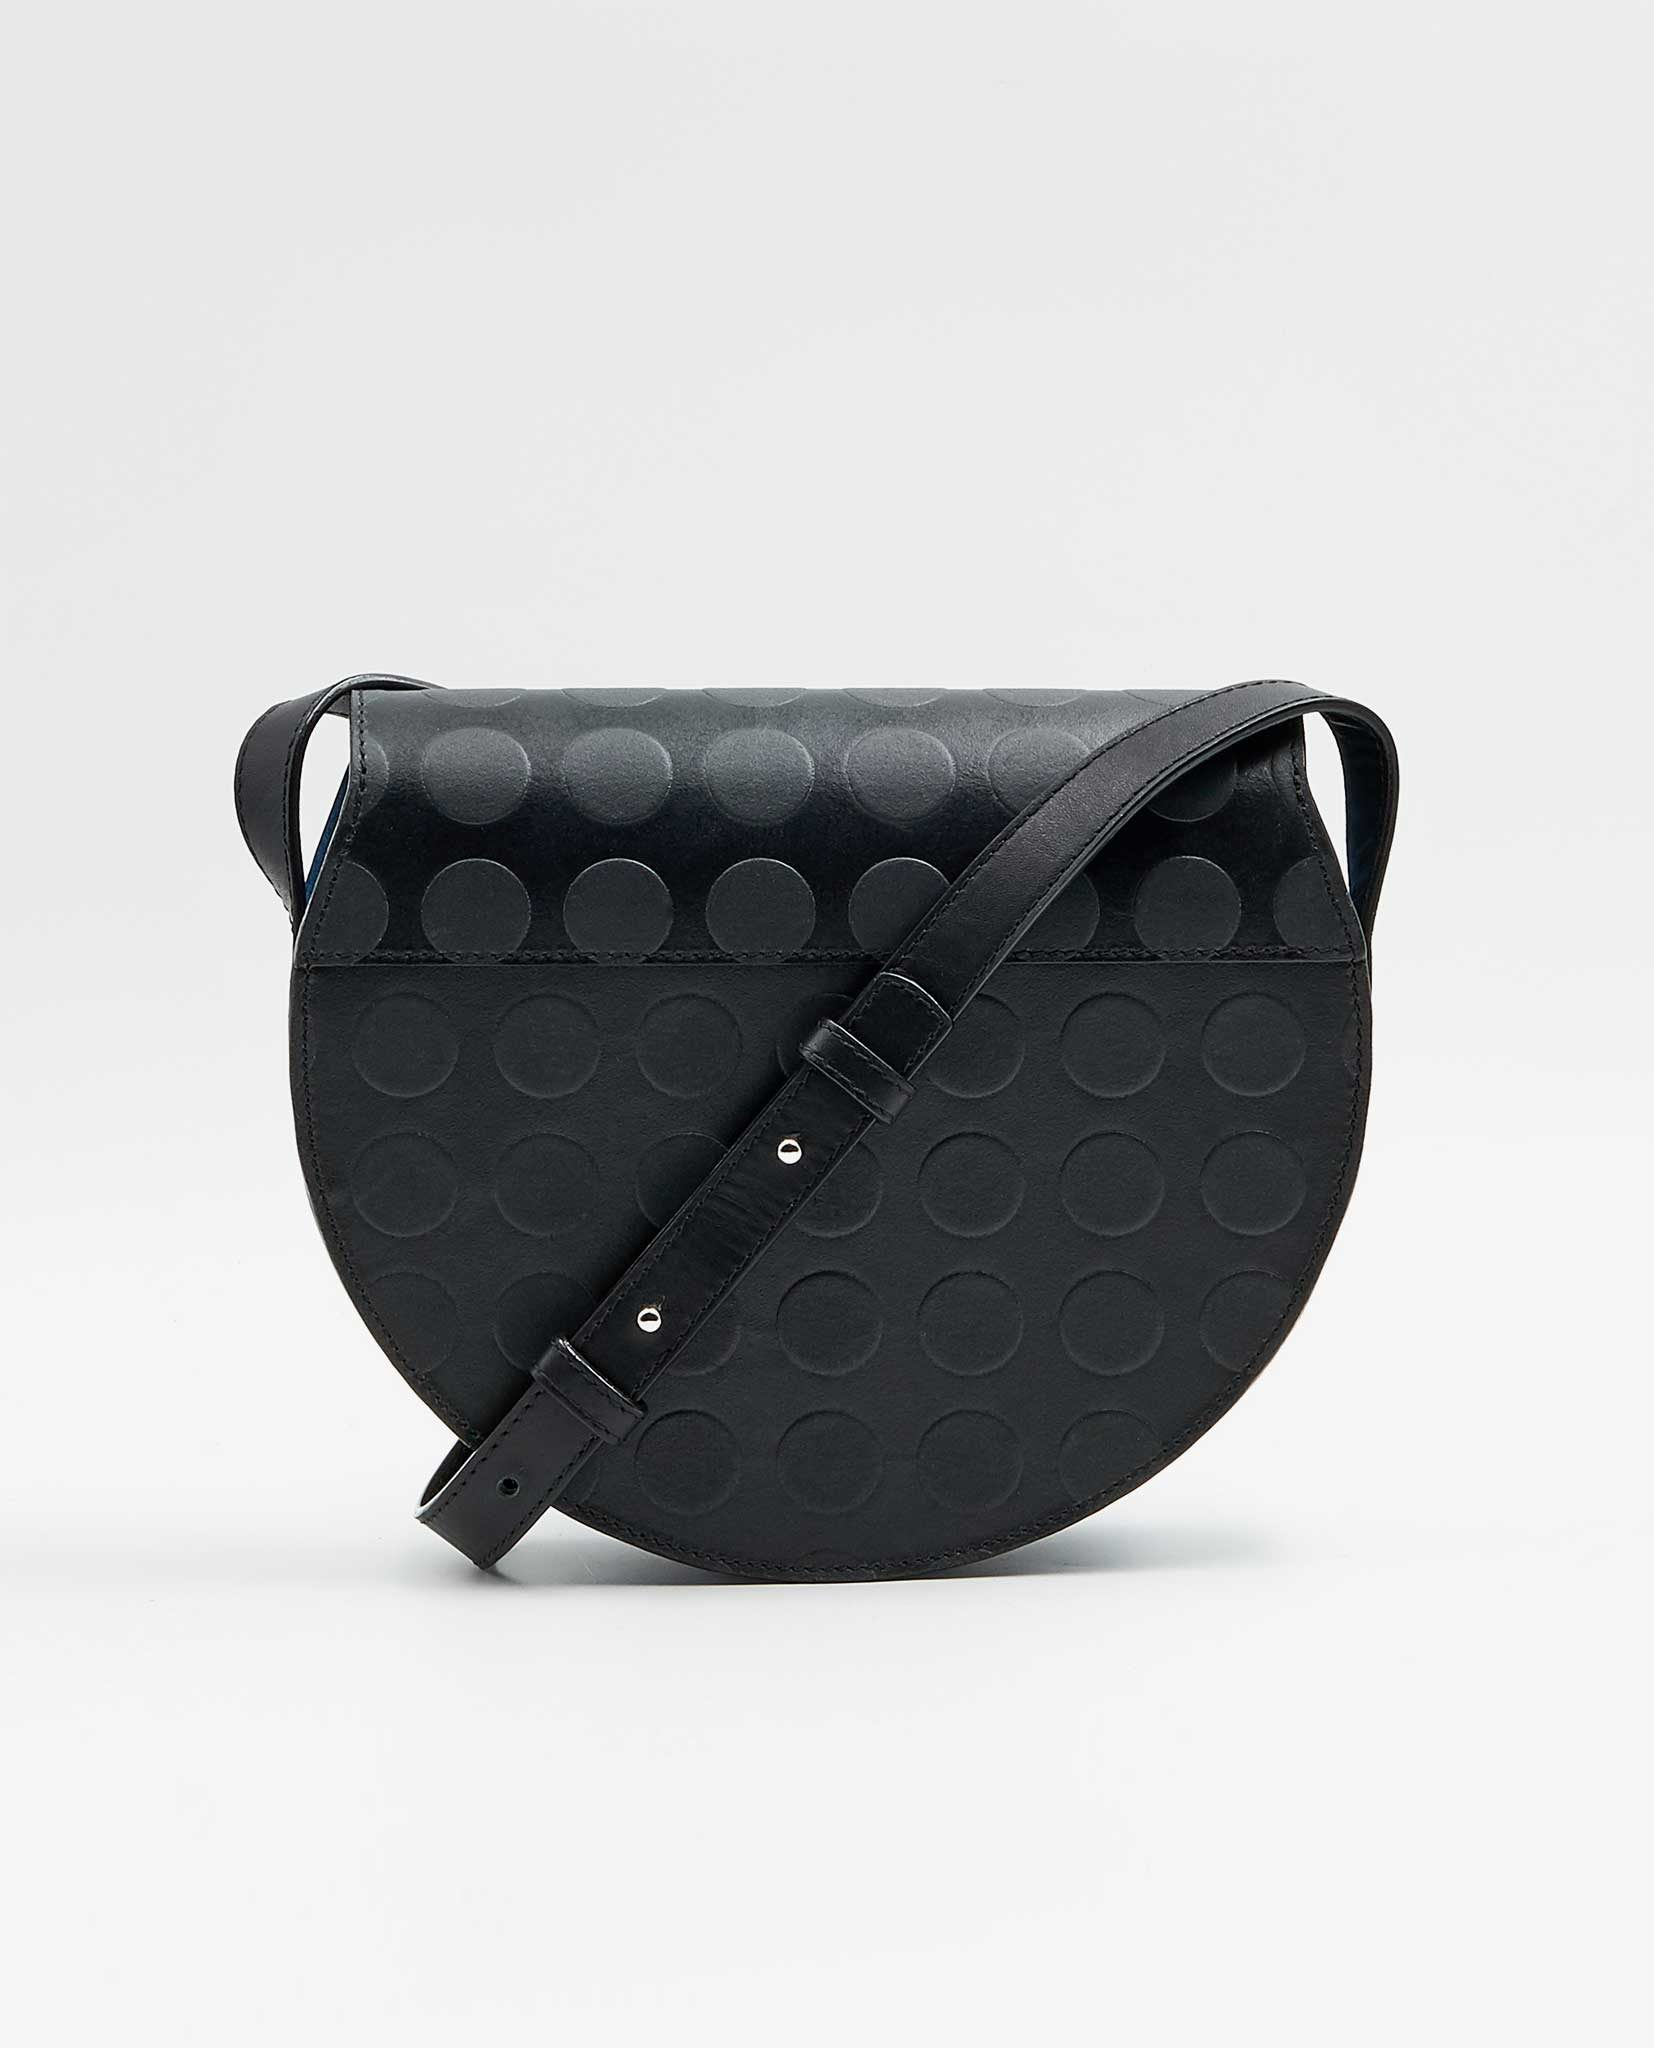 SOOFRE-Berlin-unique-Crossbody-Purse-dotted-black-sapphire-blue-BACK